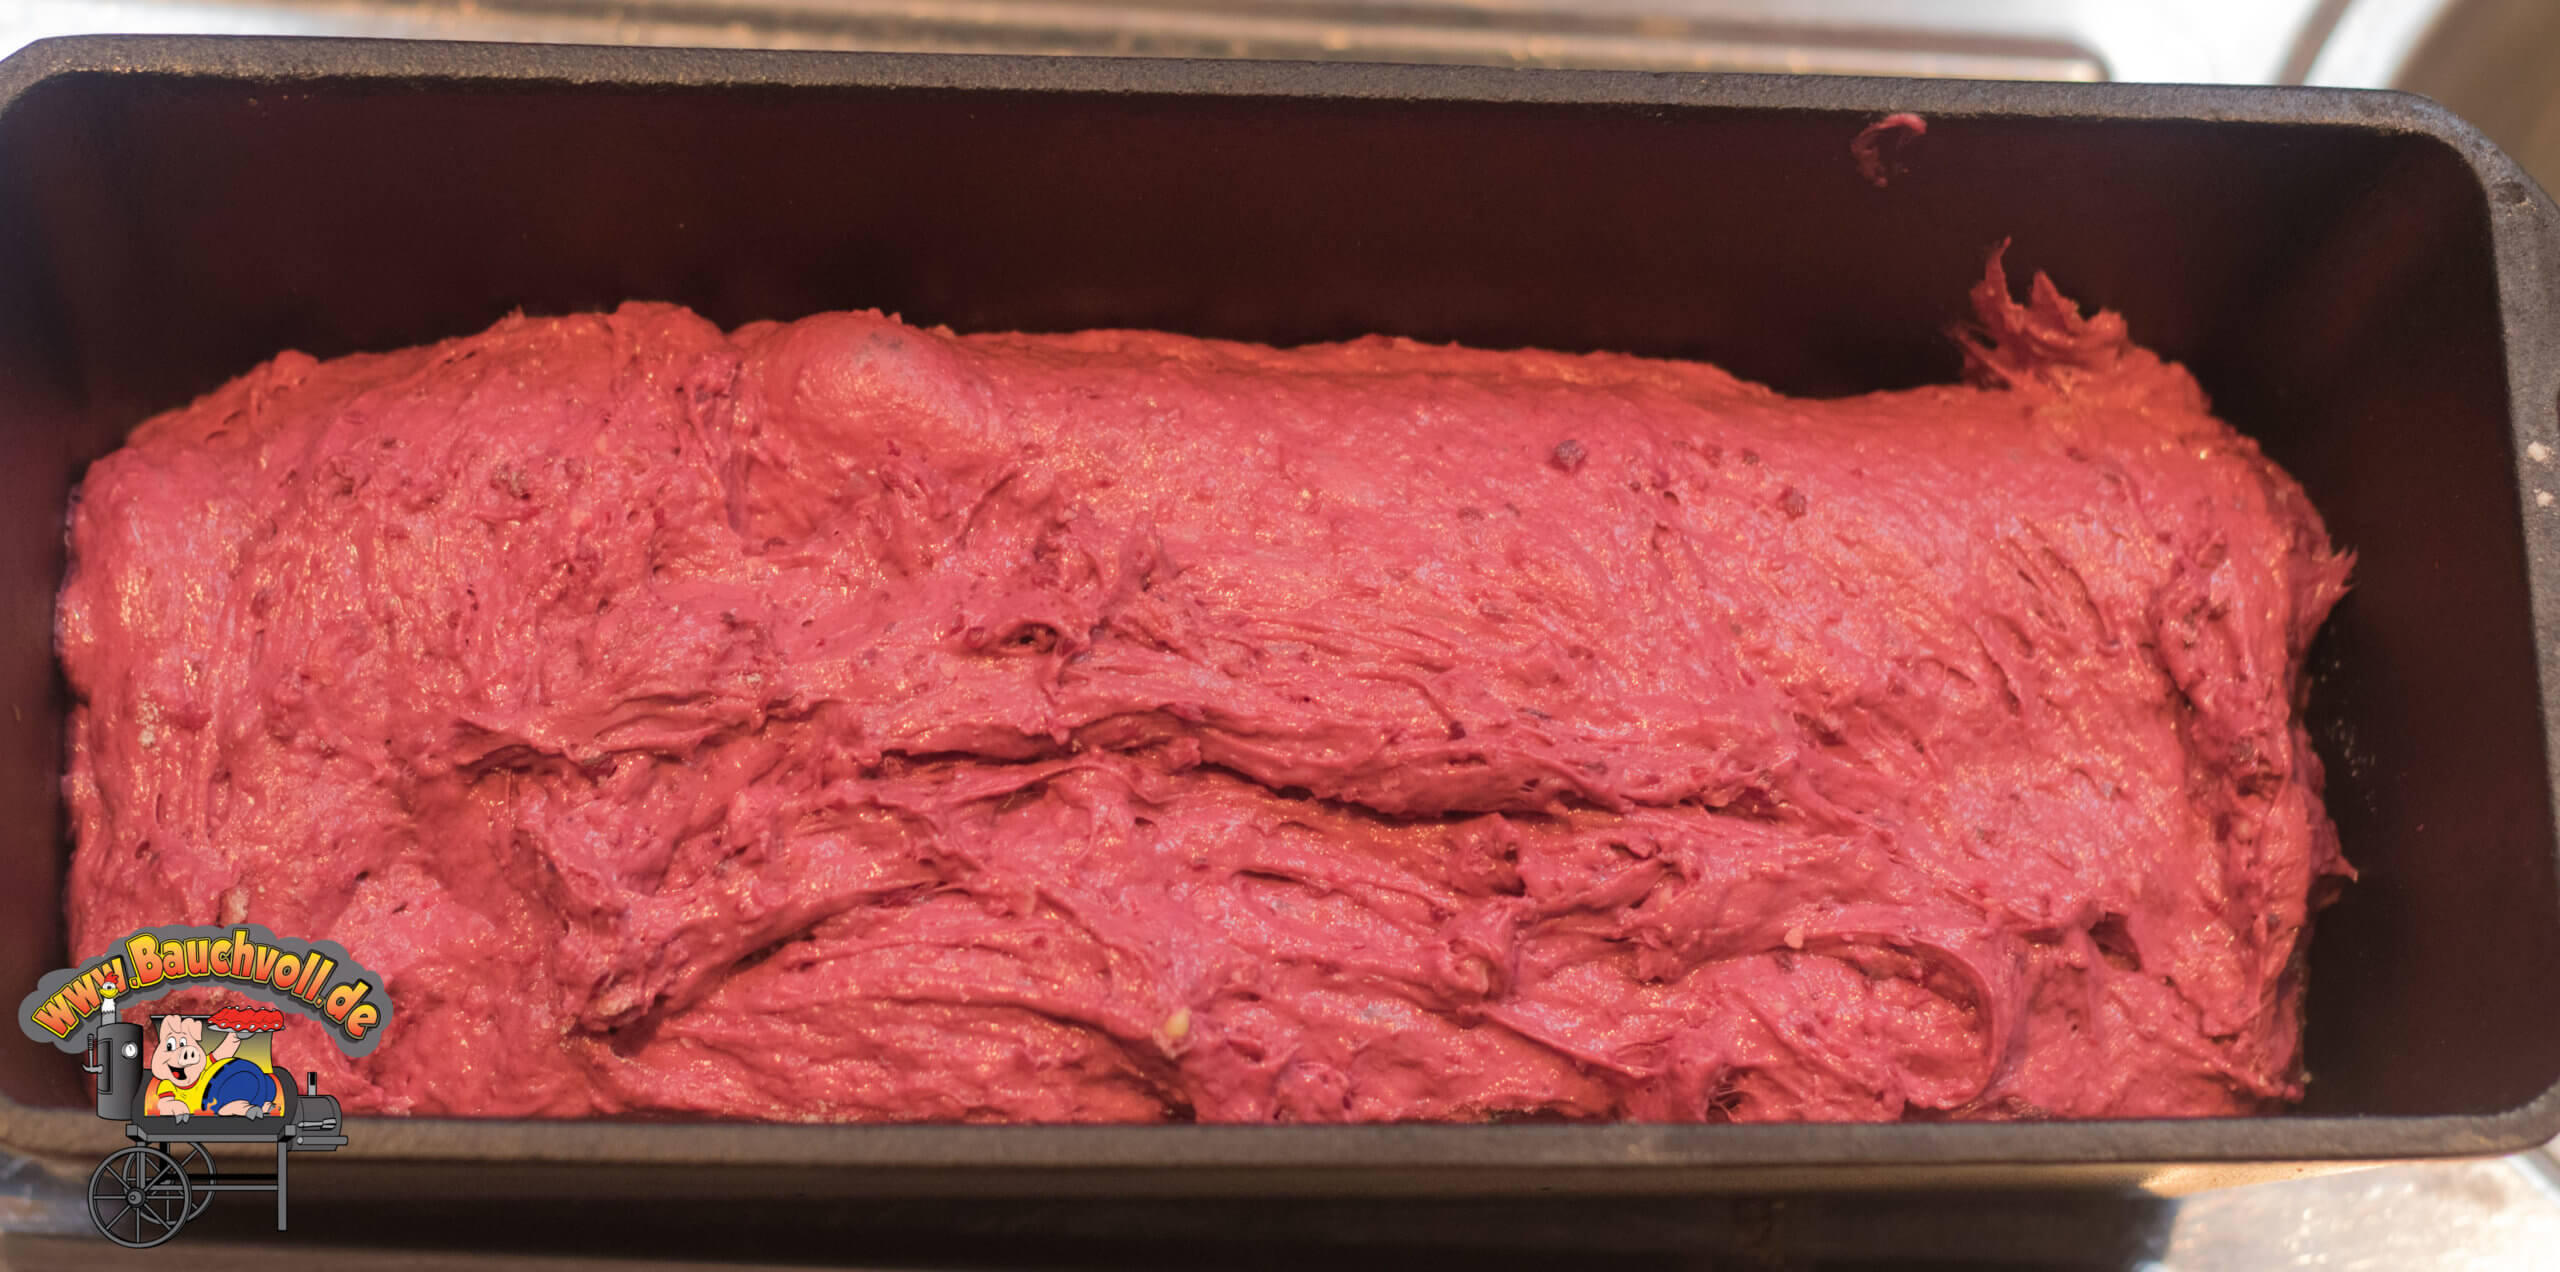 rote-beete-brot